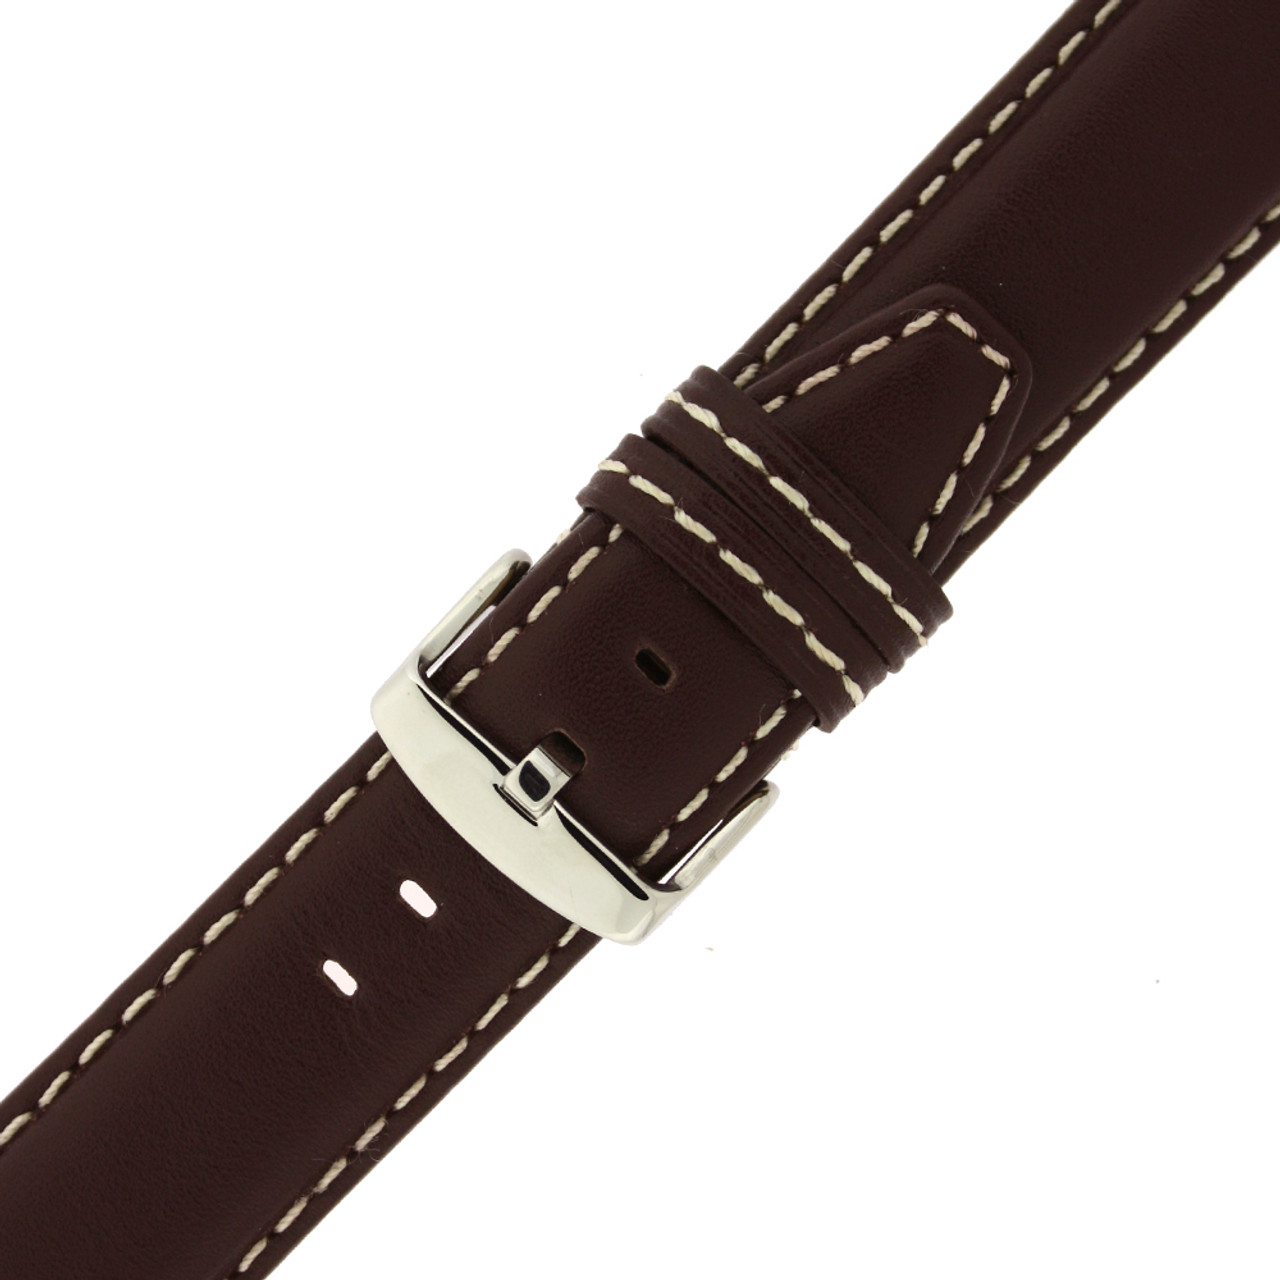 Brown Leather Watch Band With White Stitching, Padding, & Extra Loop Connection